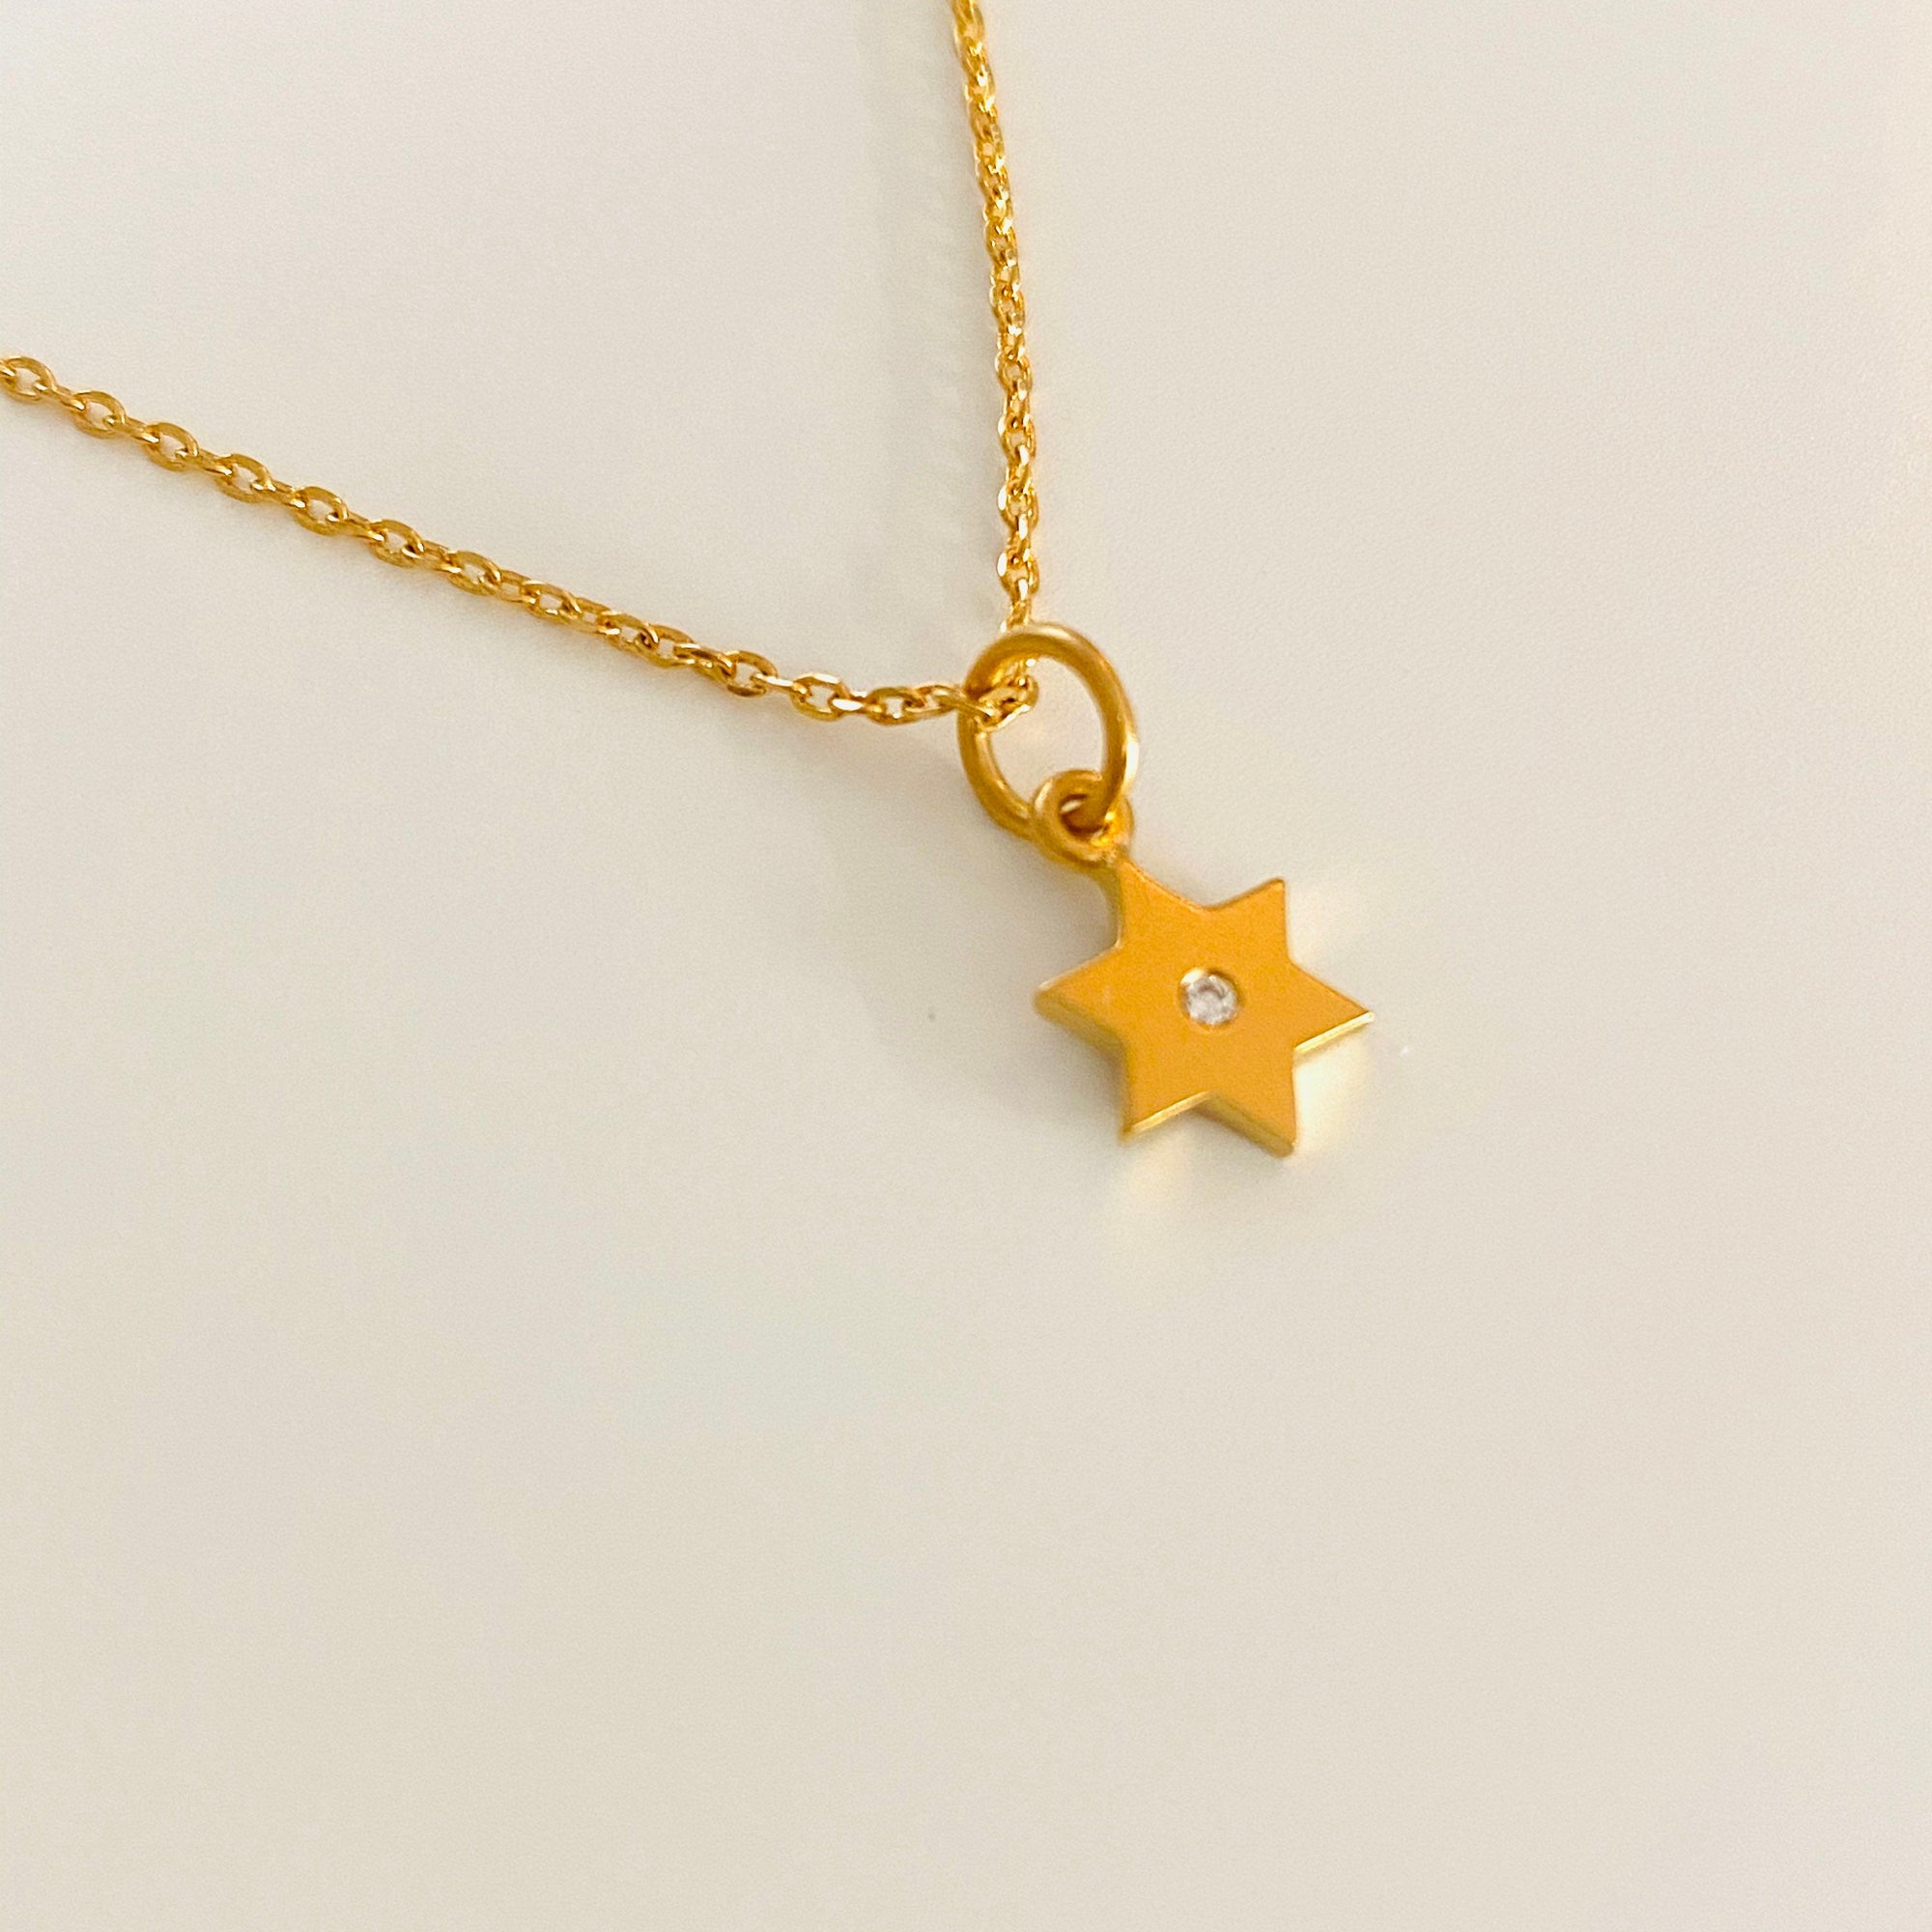 David star necklace